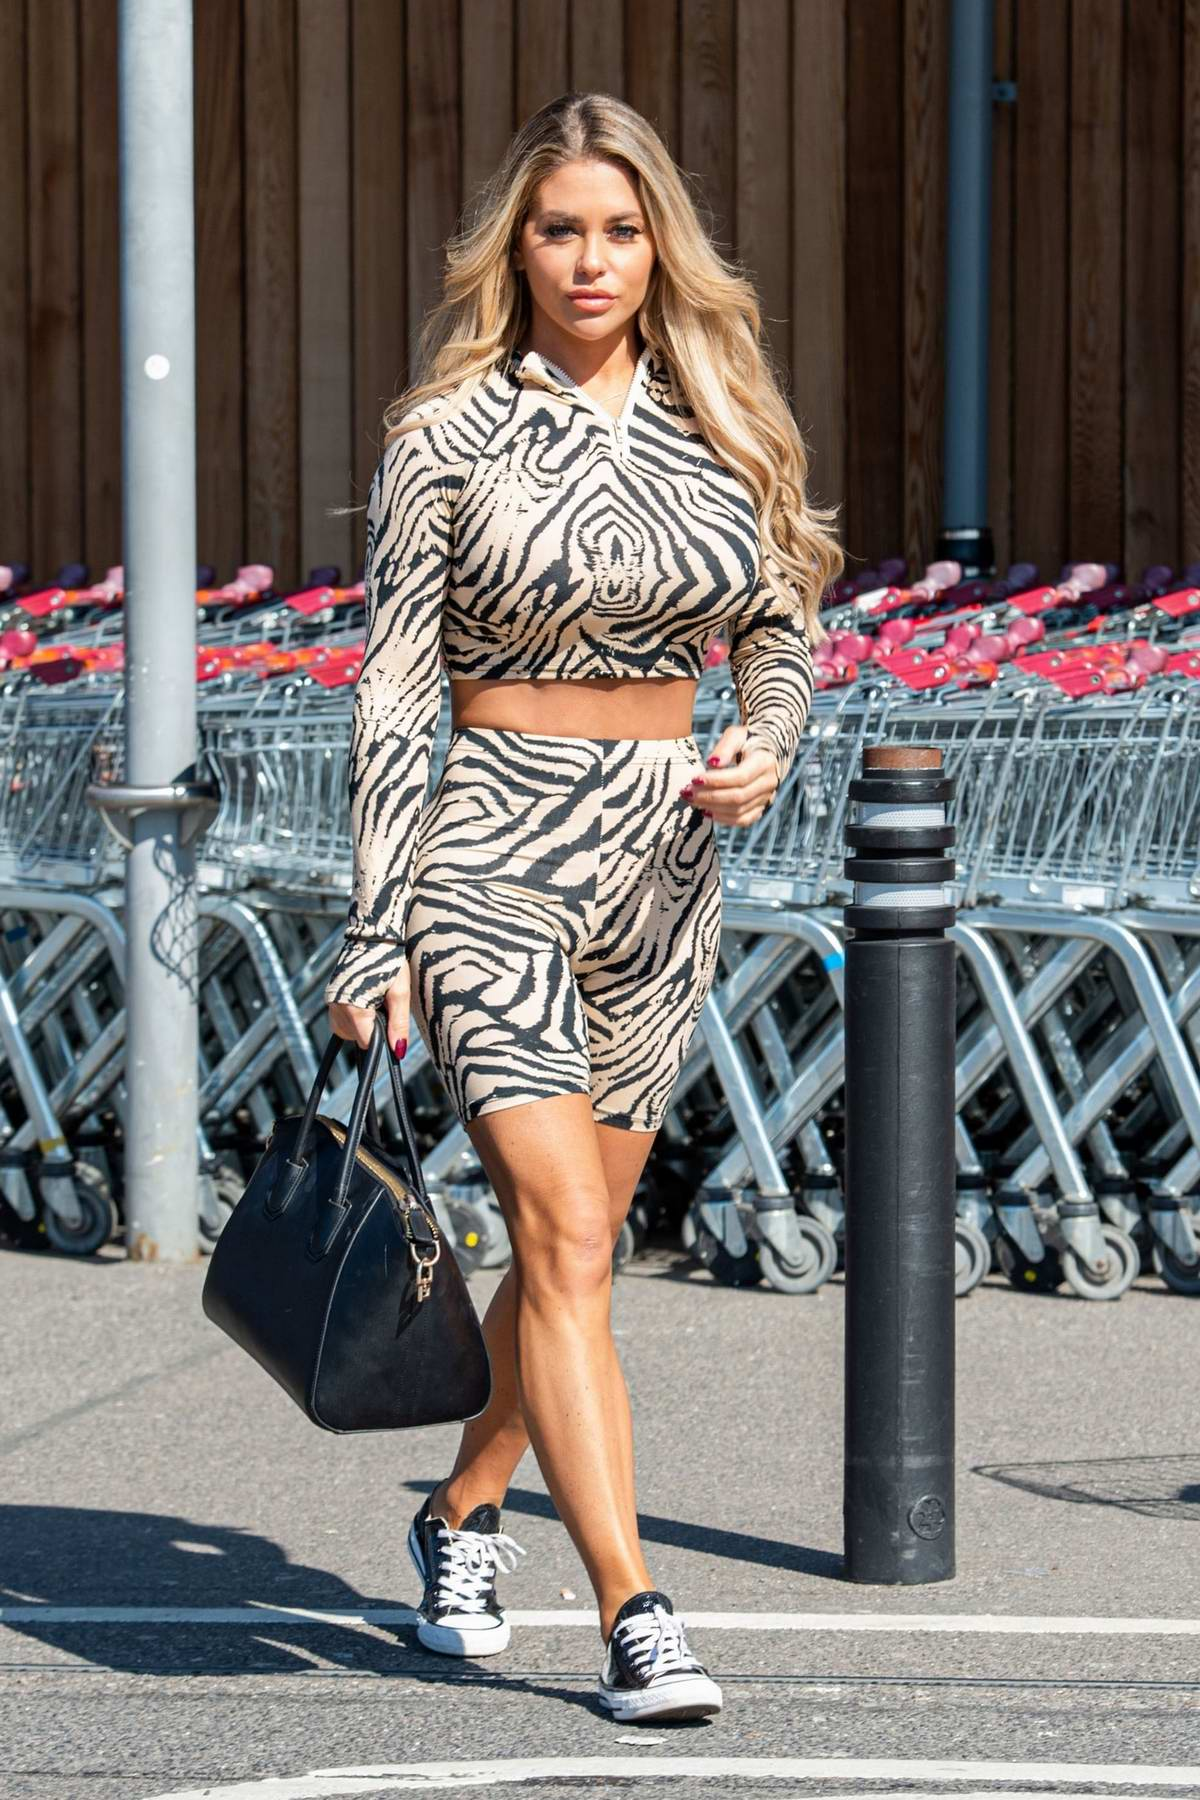 Bianca Gascoigne sports zebra print outfit while out for some shopping at Sainsburys in Gravesend, Kent, UK